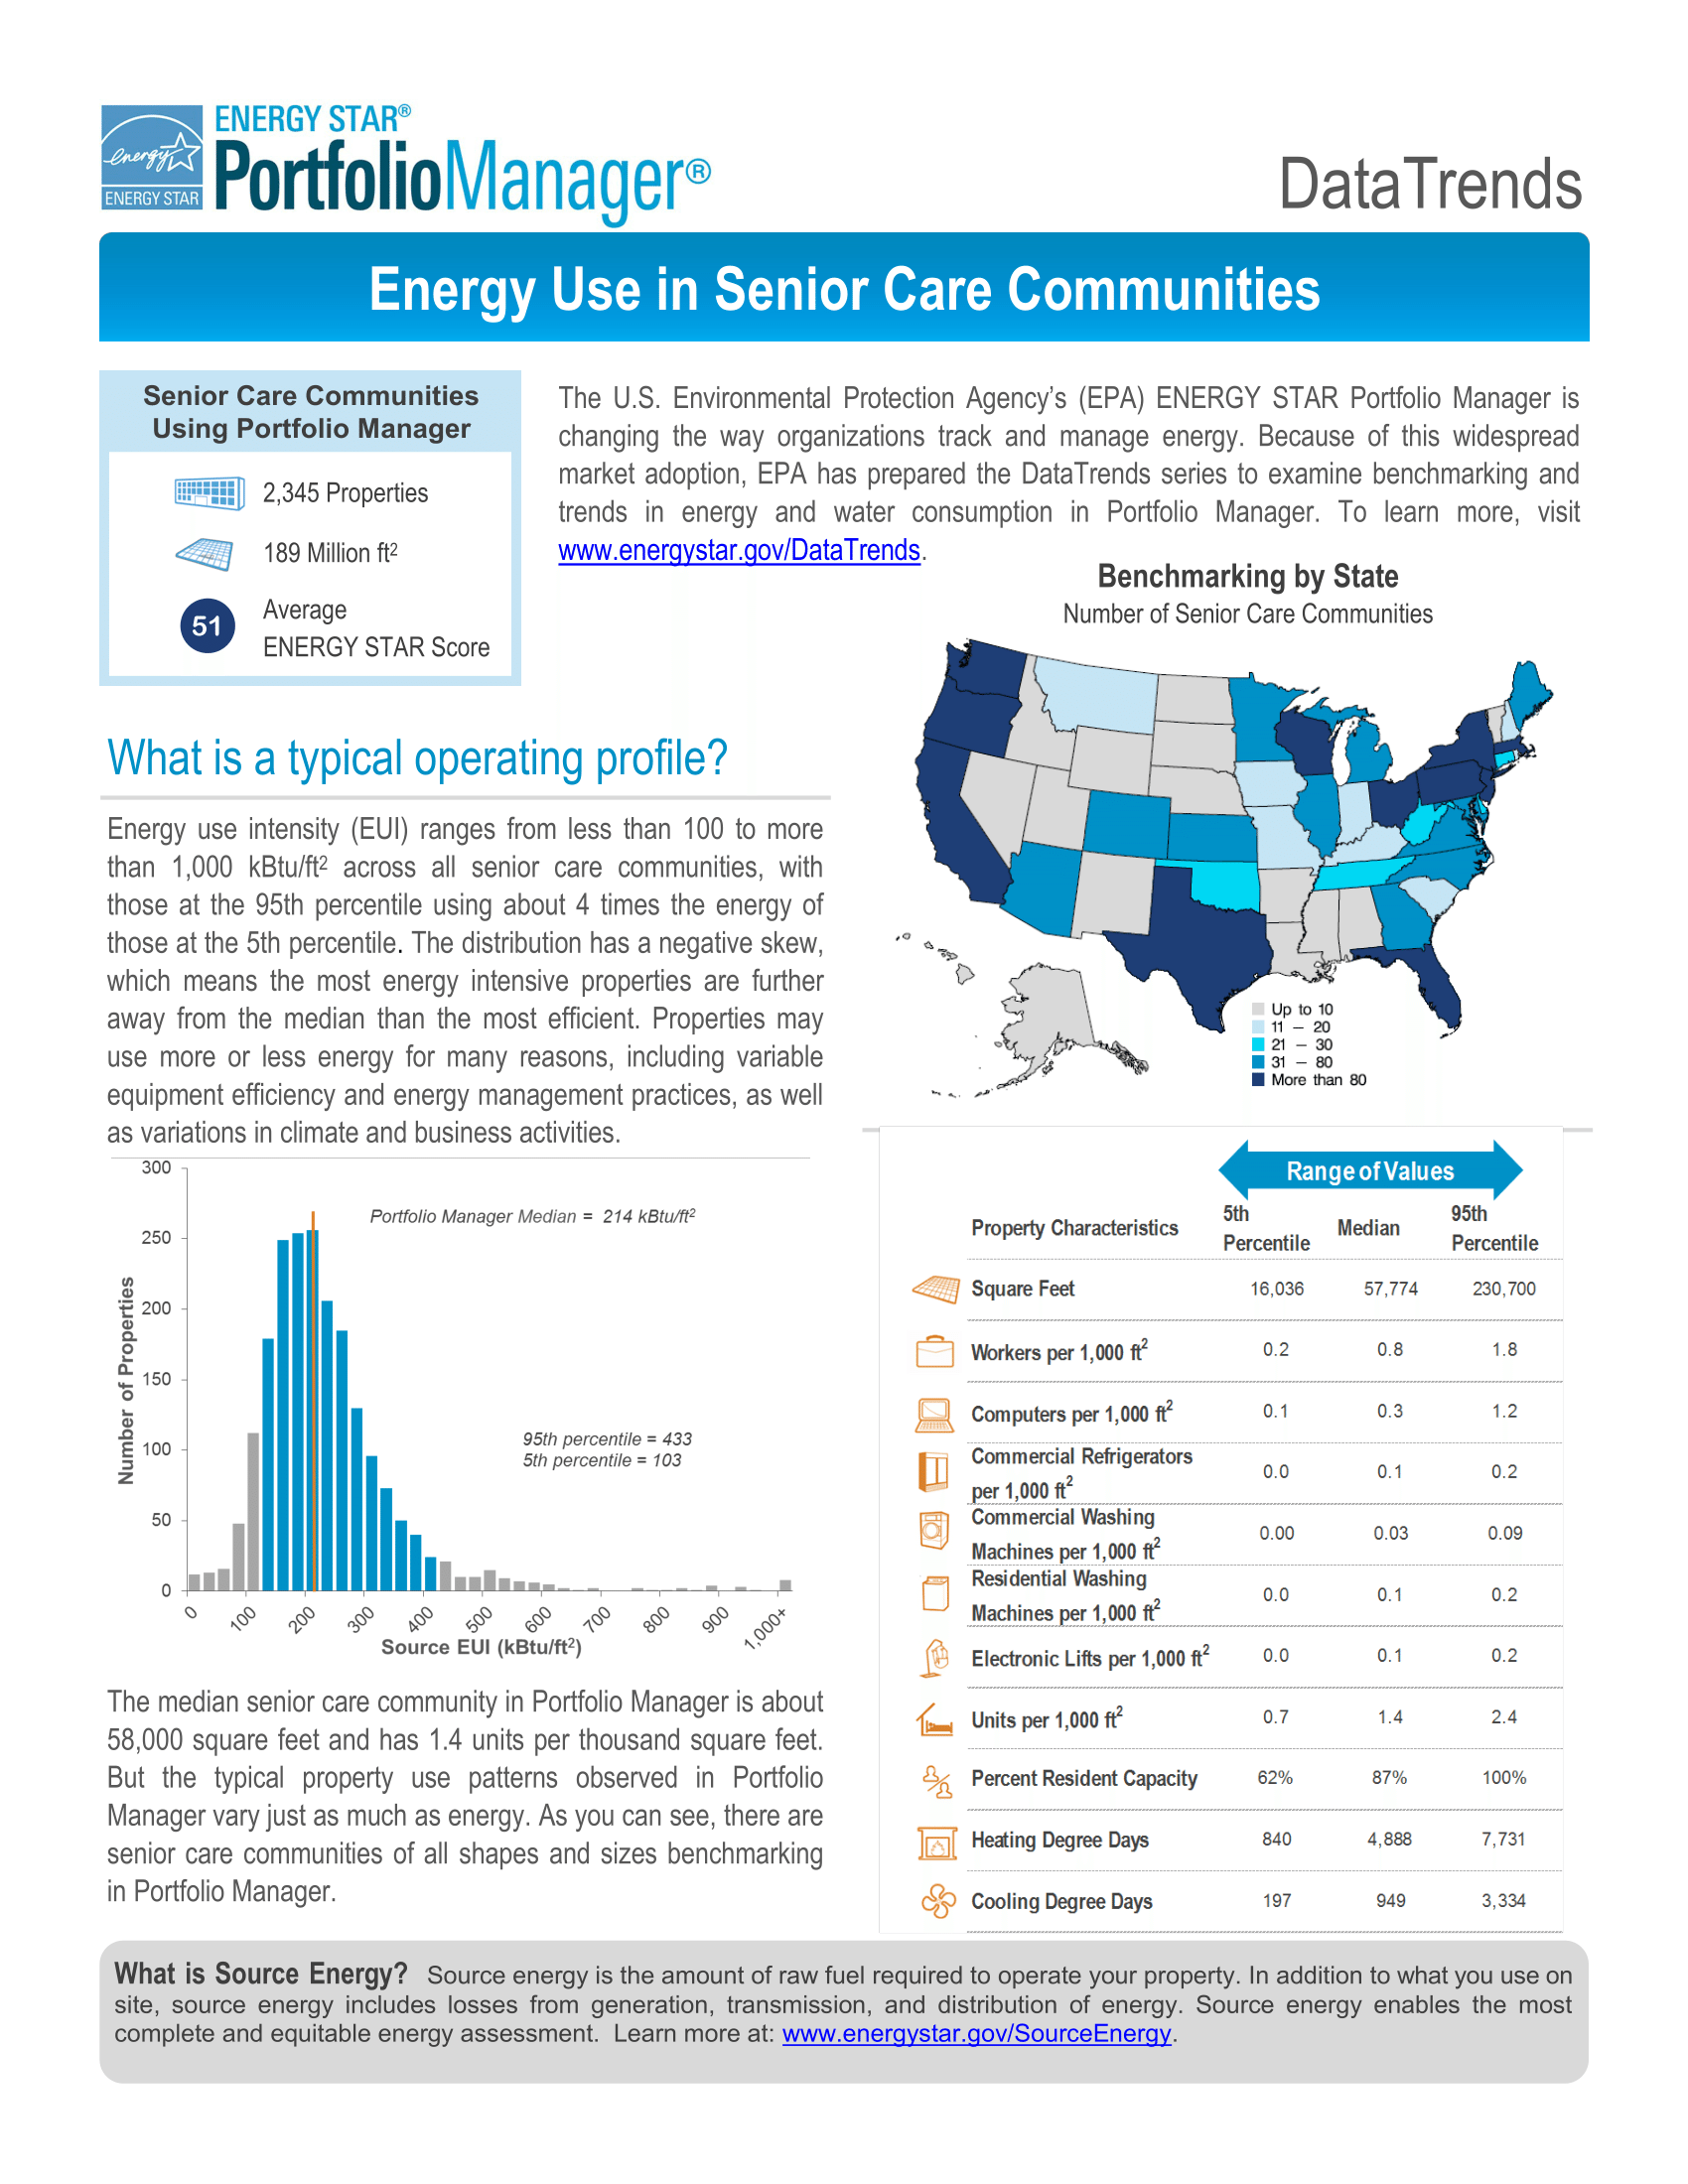 DataTrends: Energy Use in Senior Care Communities